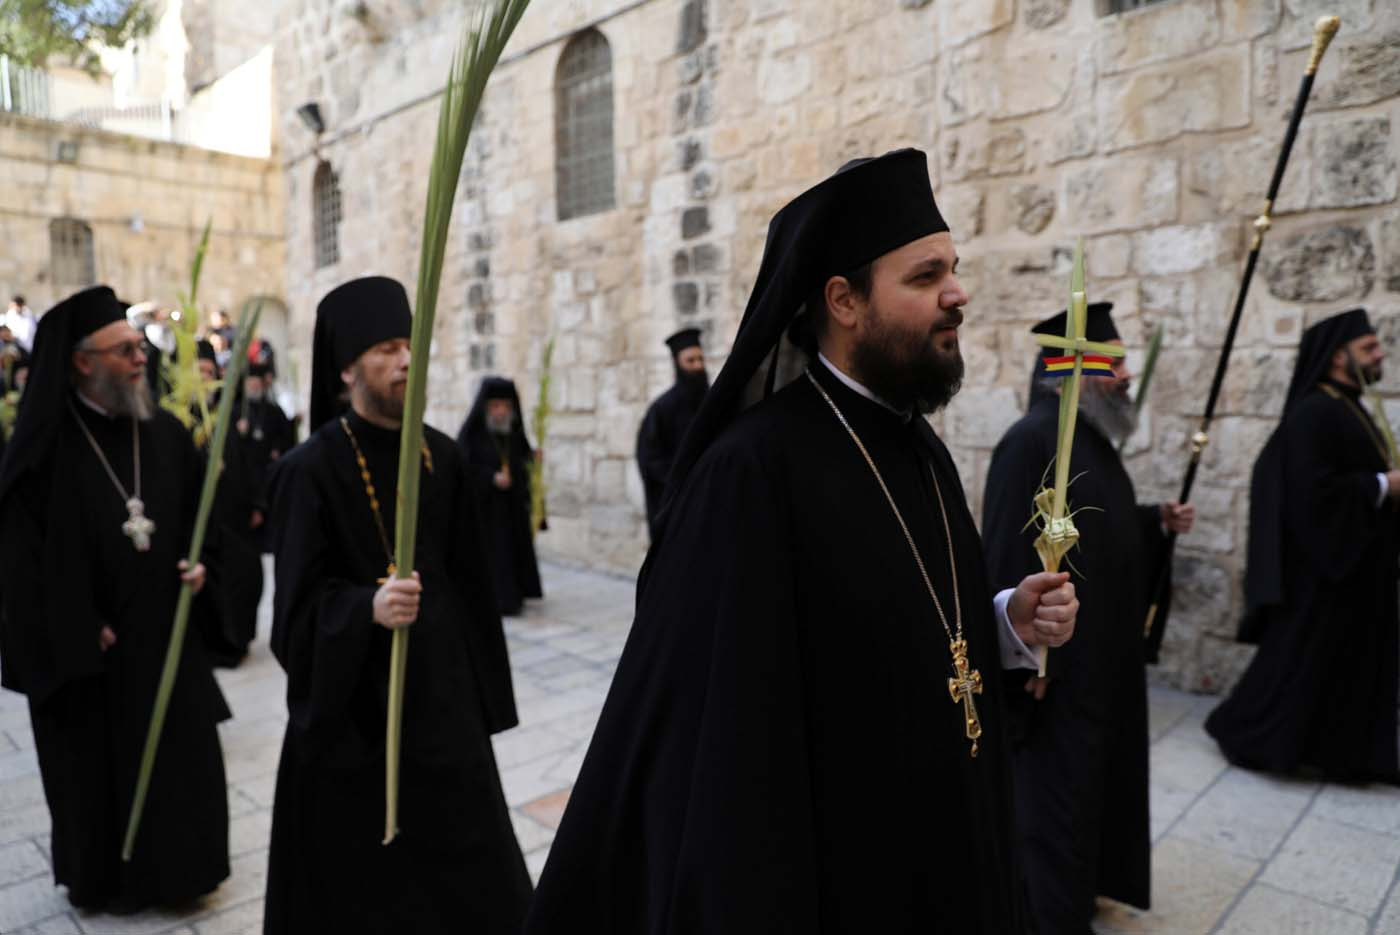 Members of the Orthodox Christian clergy take part in a Palm Sunday ceremony near the Church of the Holy Sepulchre in Jerusalem's Old City April 9, 2017. REUTERS/Ammar Awad